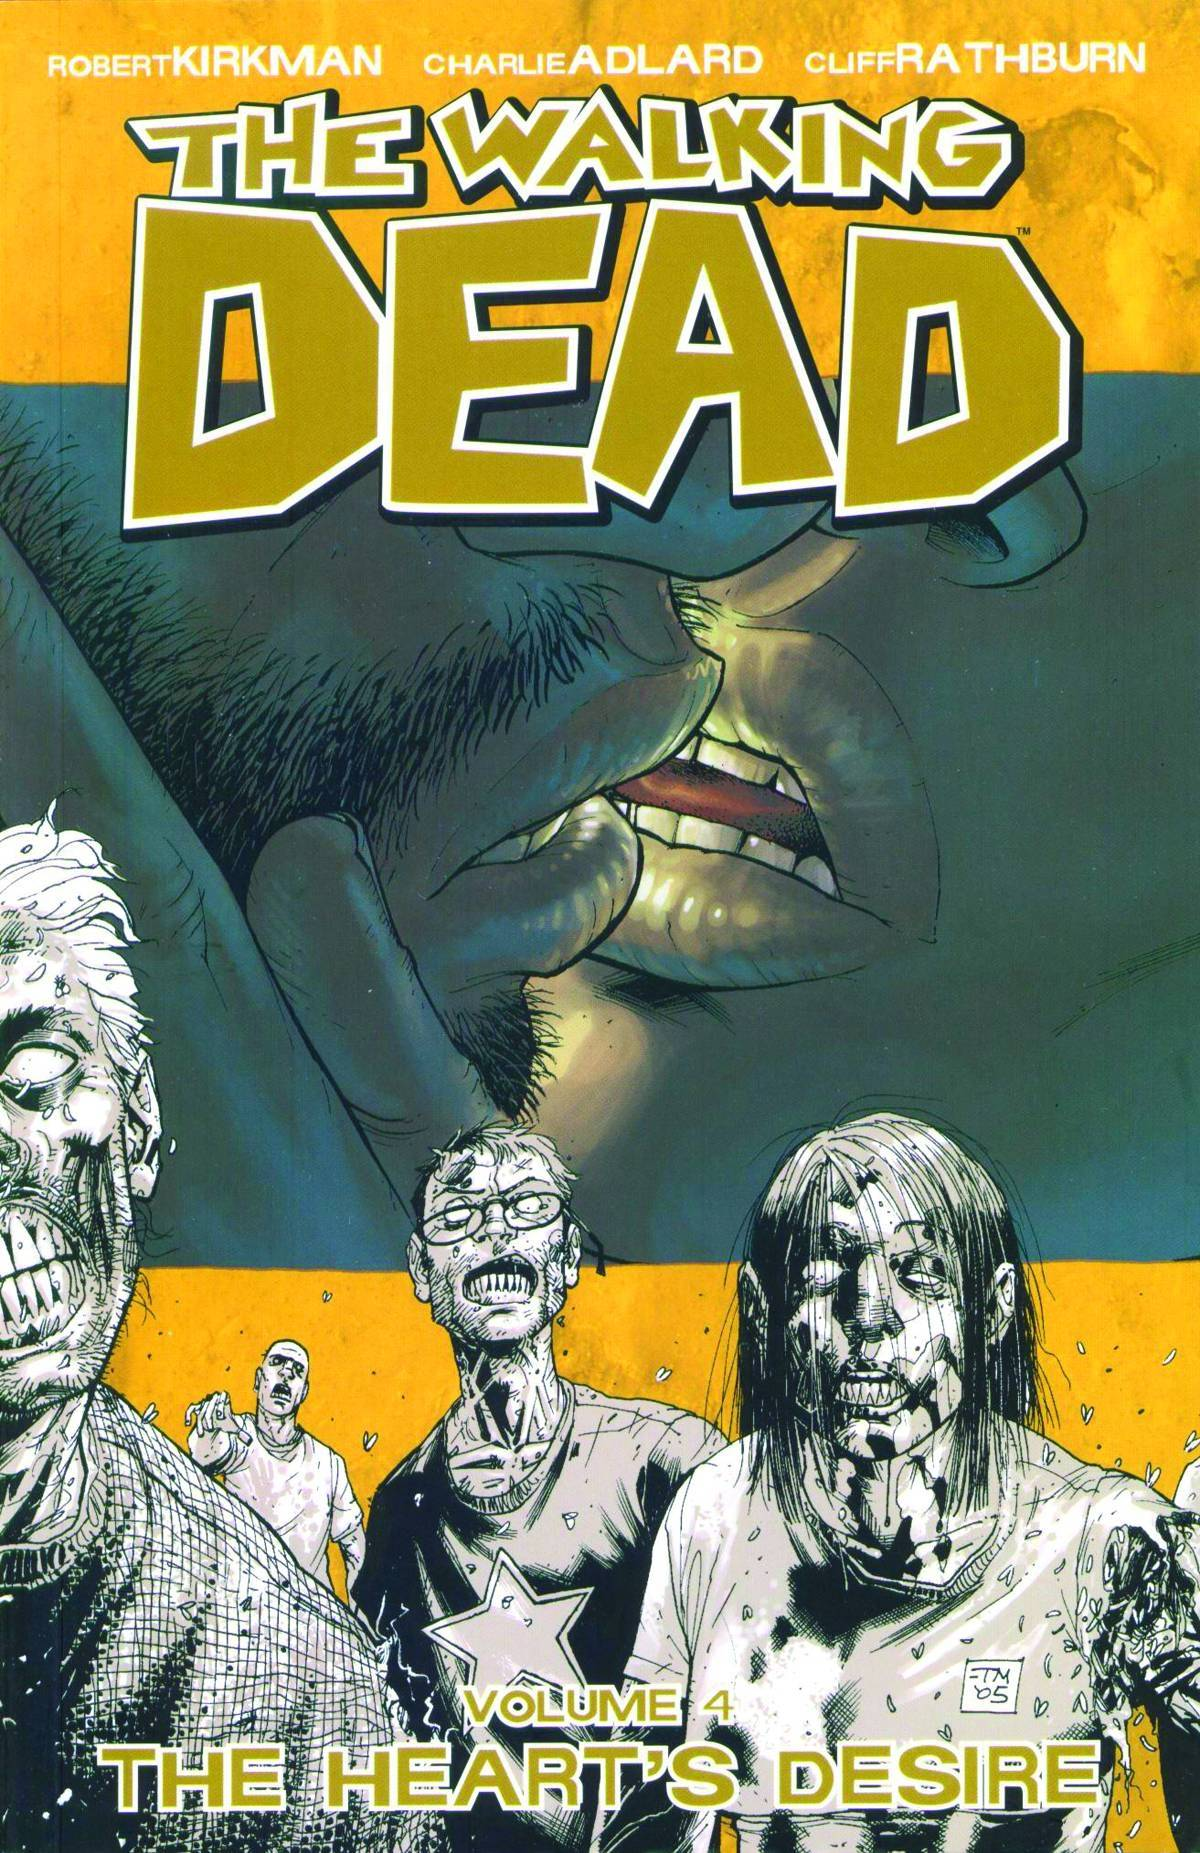 WALKING DEAD TP VOL 04 HEARTS DESIRE (NEW PTG) (SEP088205)